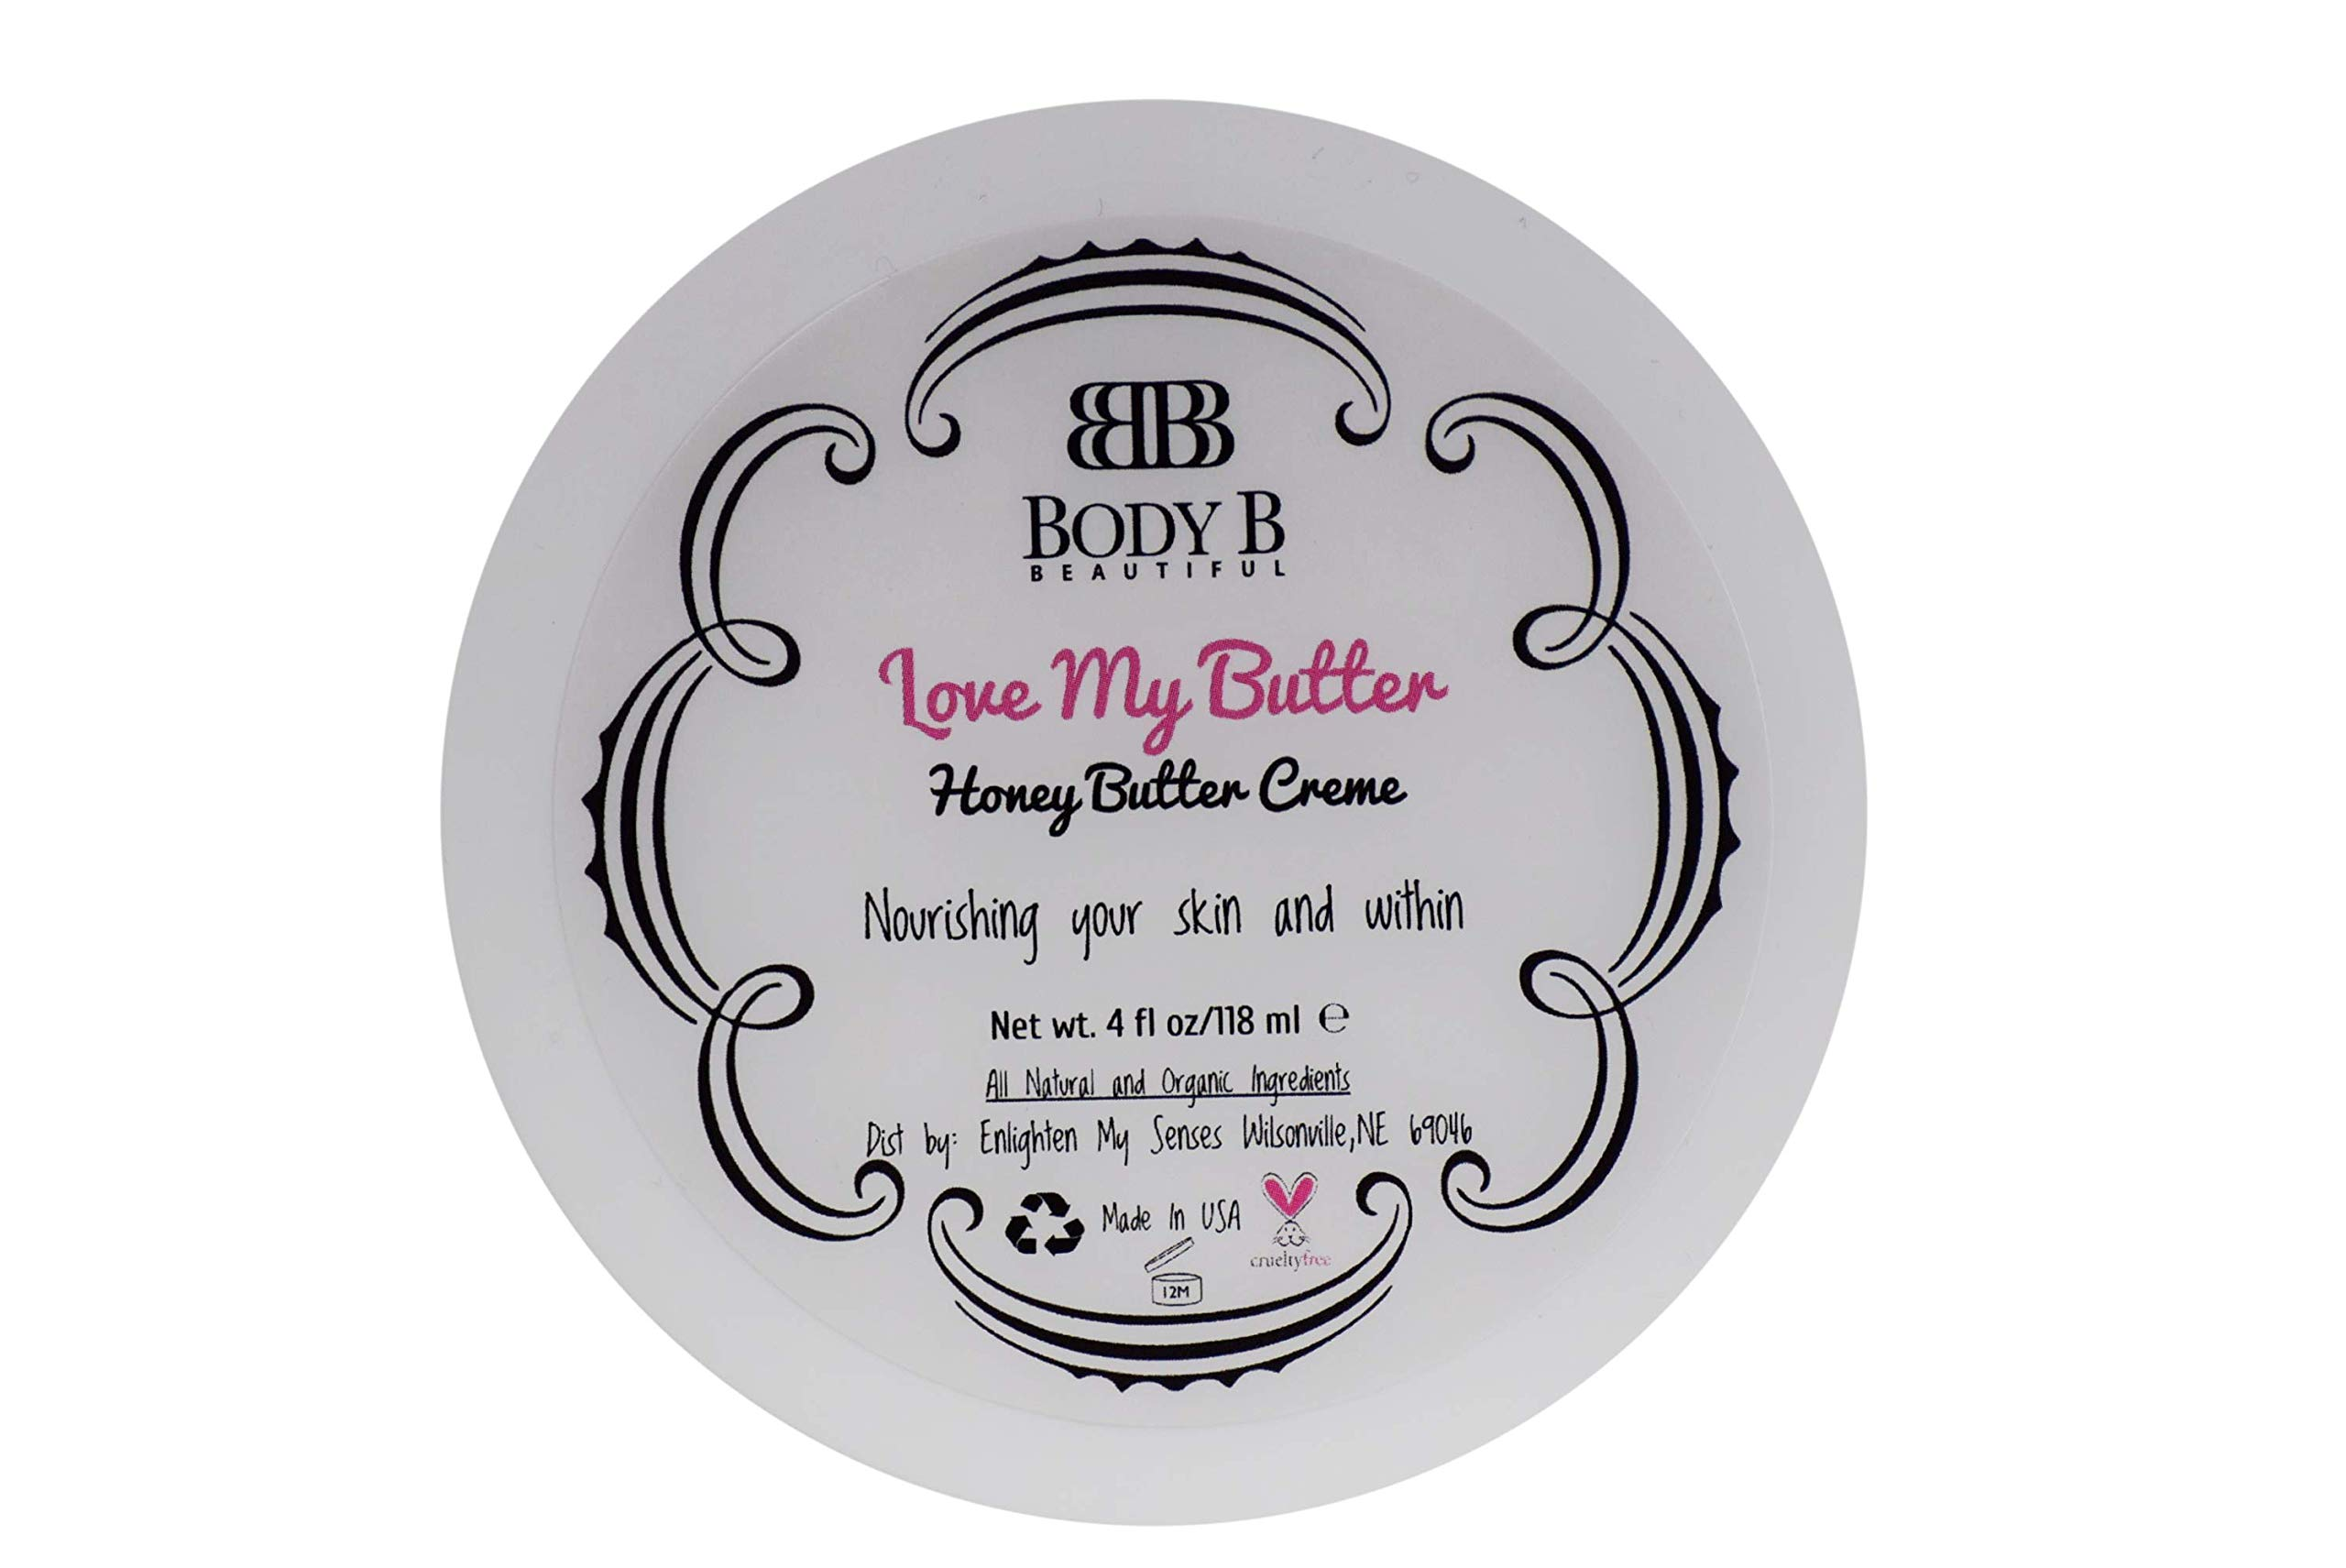 Body B Beautiful/Luxurious Honey Body Butter Creme/Lasting Hydration/Moisturizing and Nourishing with All Natural and Organic Ingredients/Cruelty Free/Made In USA